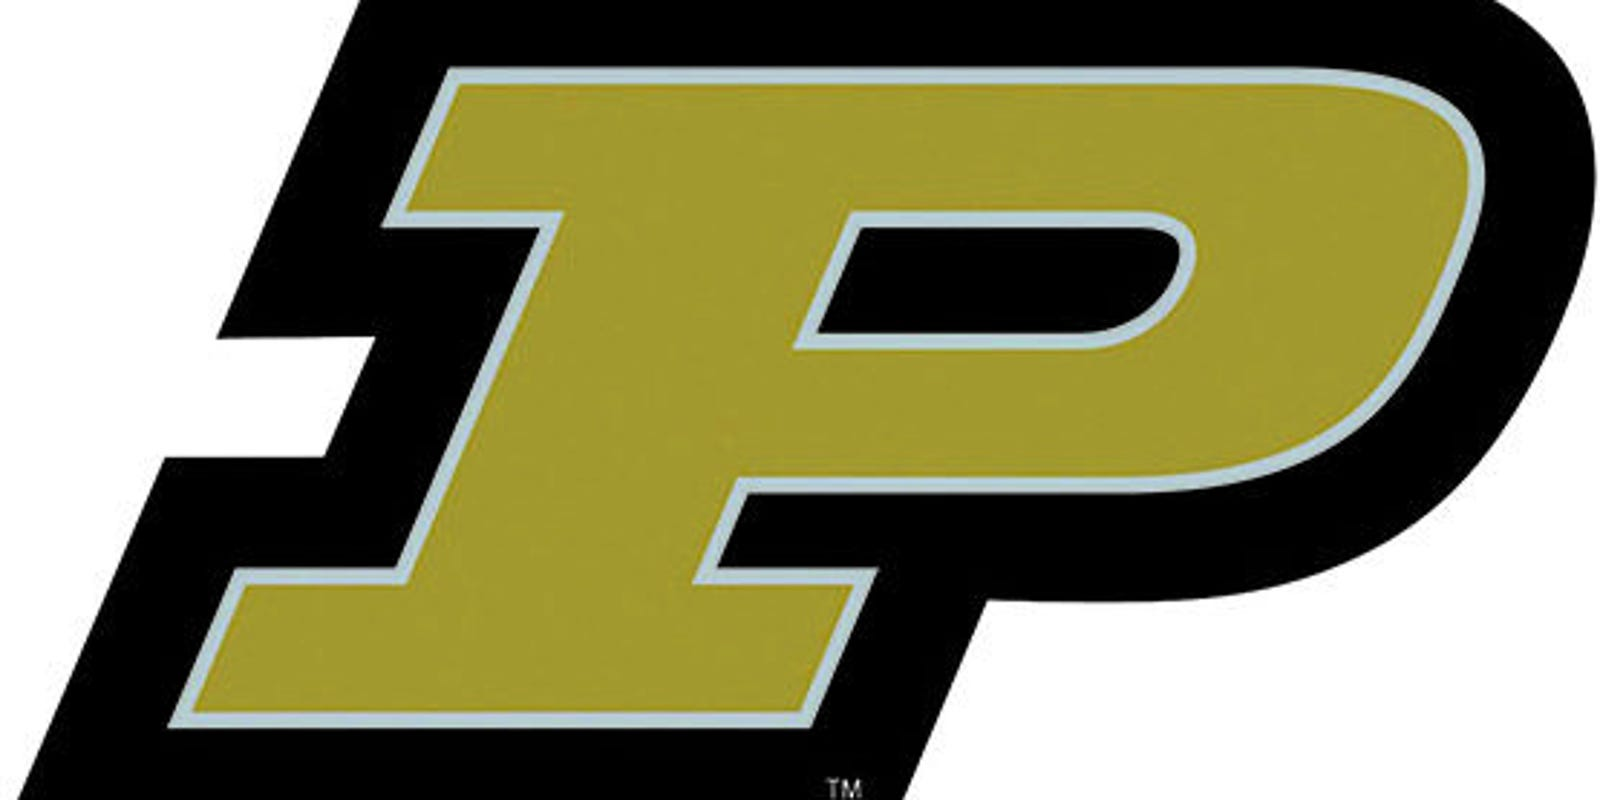 Purdue Boilermakers 2017 football schedule.